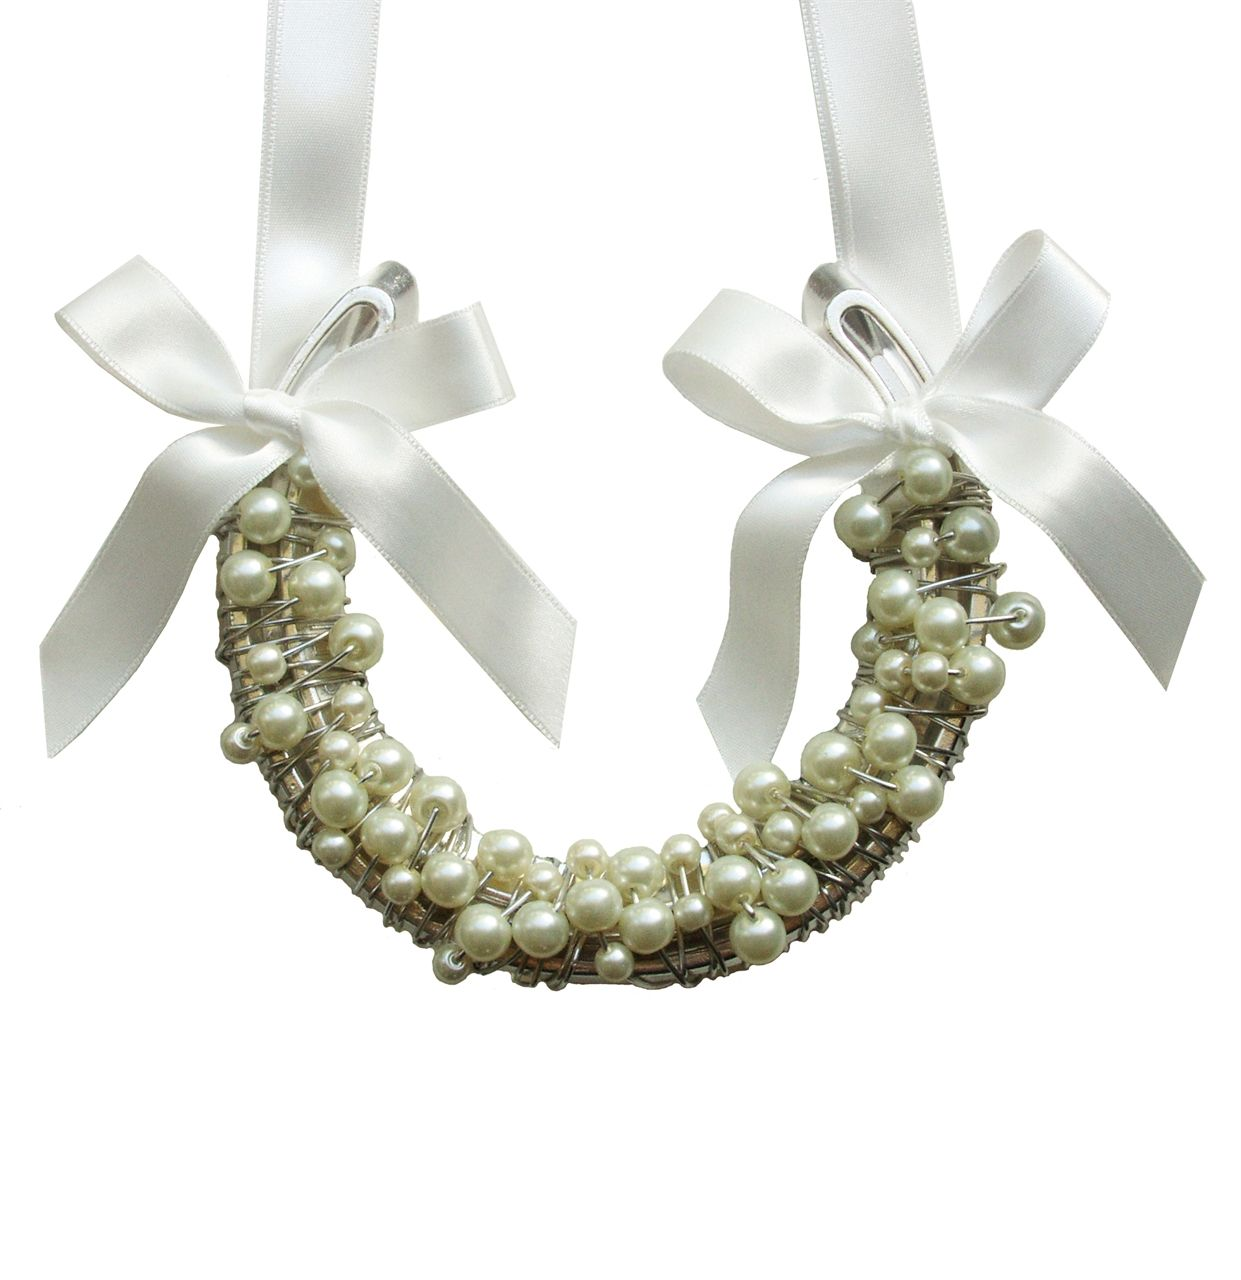 Horseshoe Wedding Gift: Pearl Lucky Irish Wedding Horseshoe